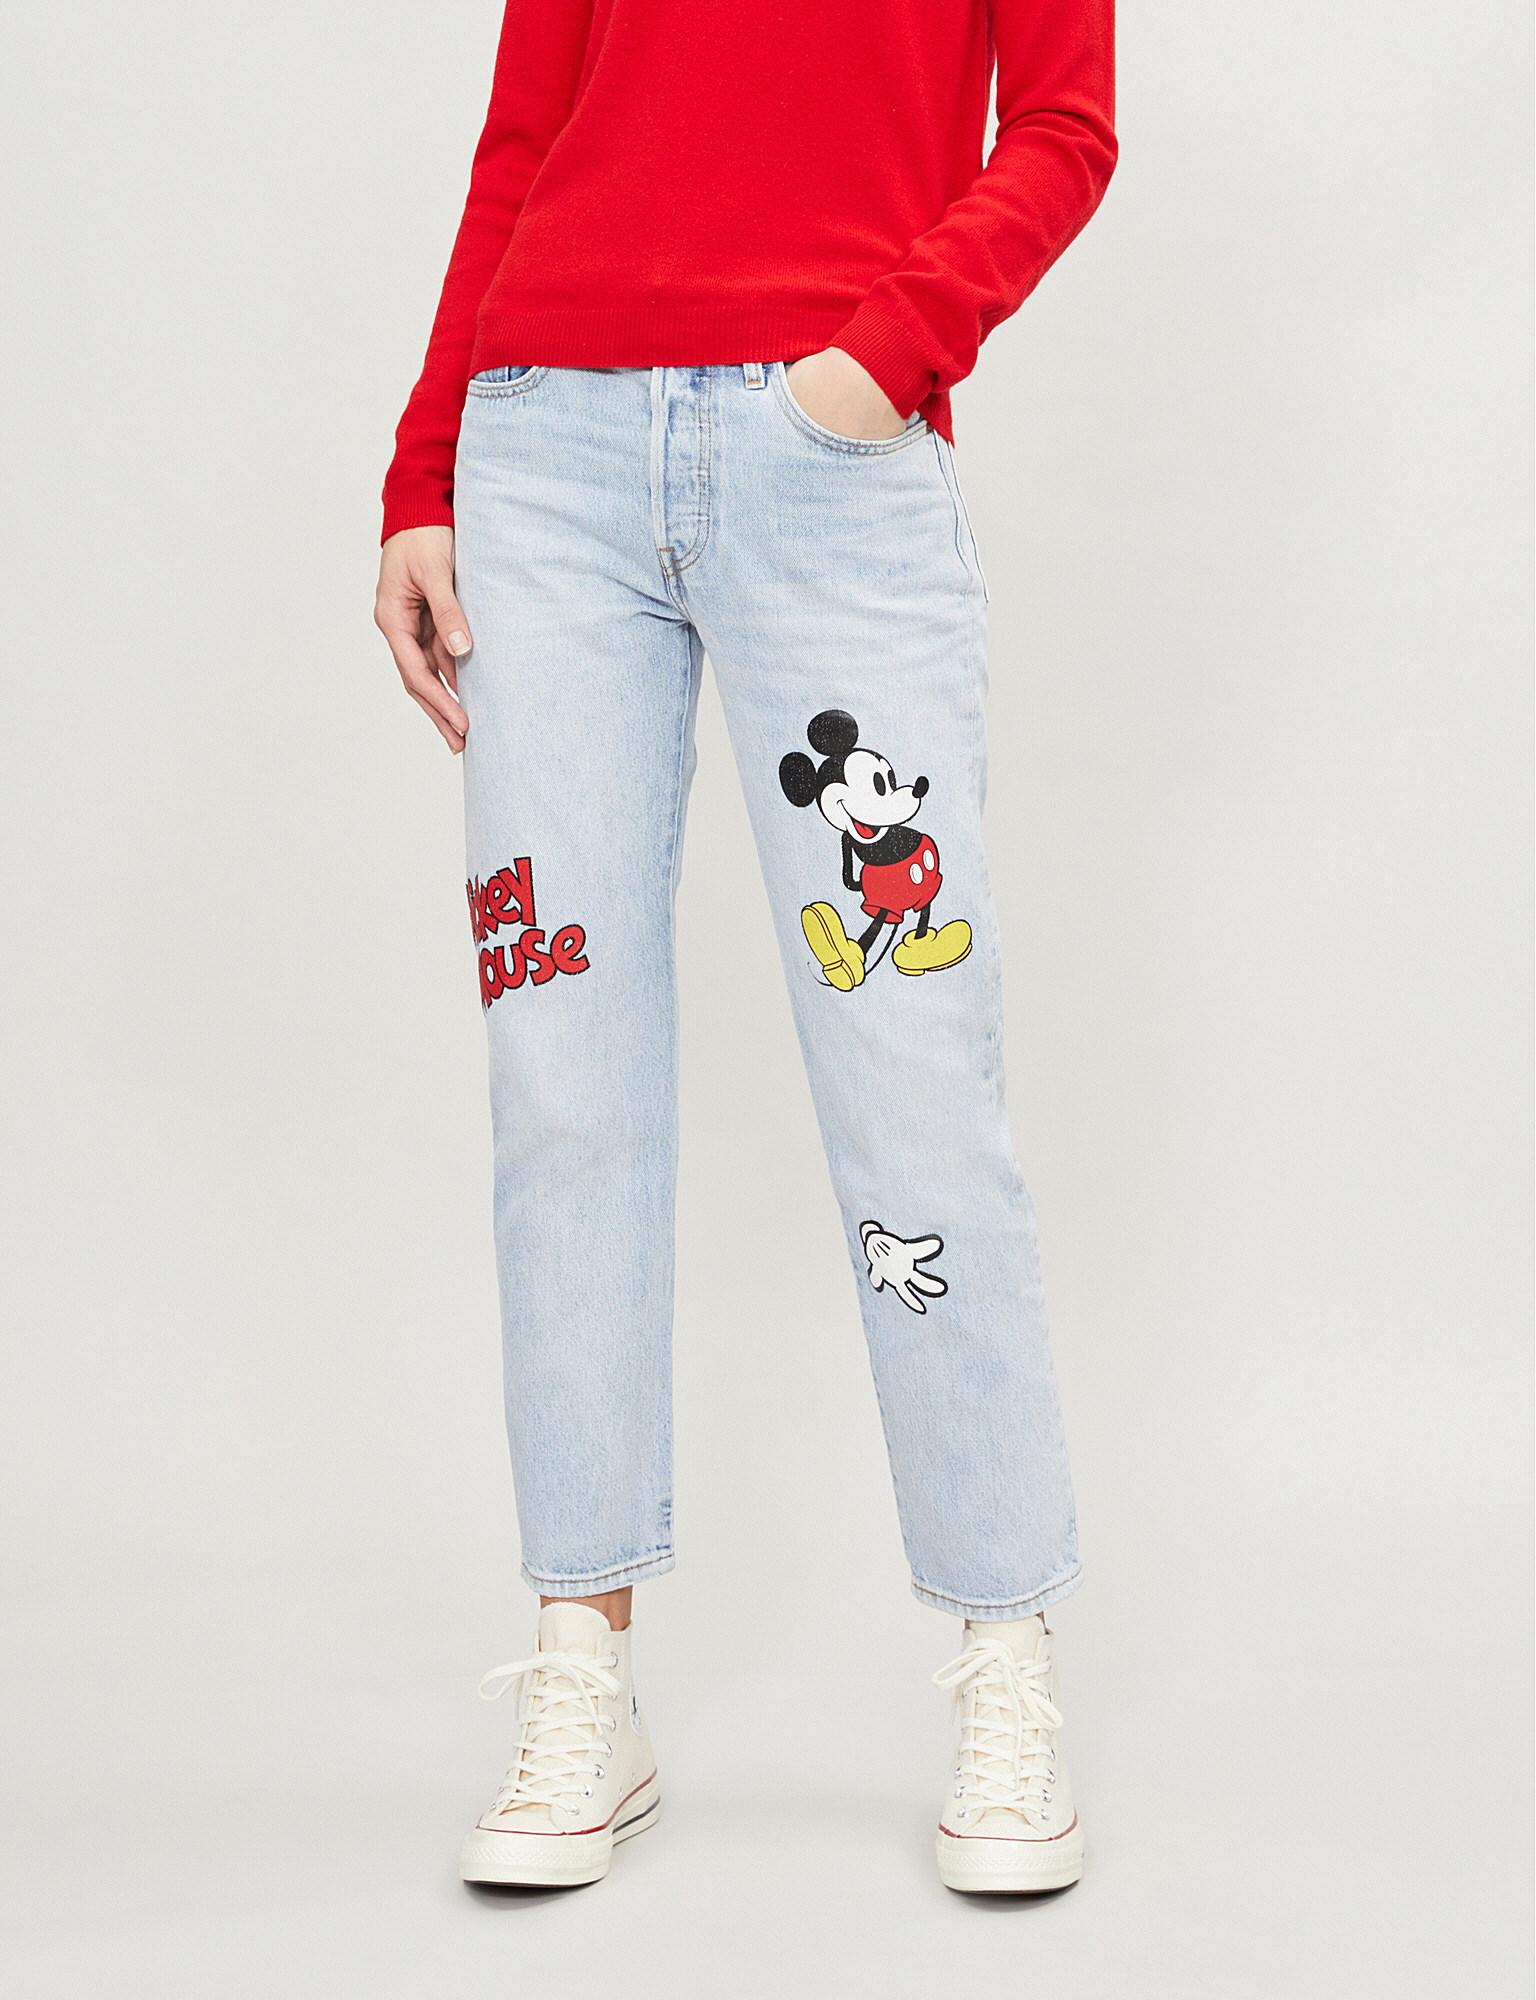 2cb4435c Levi's X Mickey Mouse 501 Straight Cropped Mid-rise Jeans in Blue - Lyst